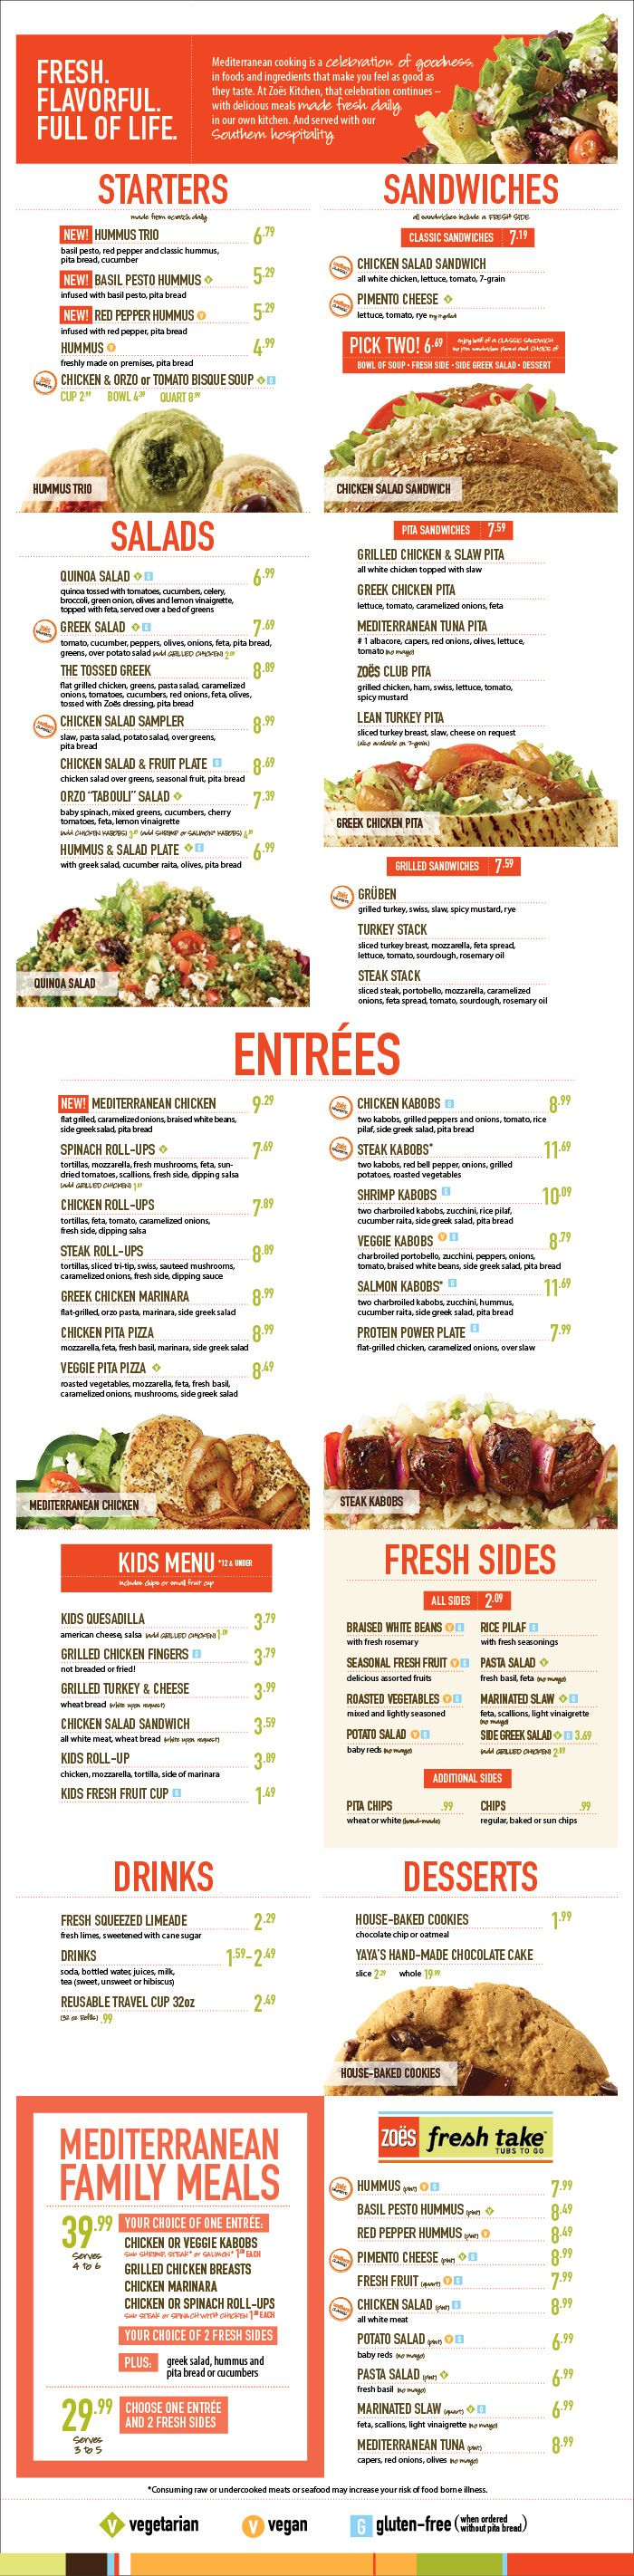 Fort Worth Alliance Great Mediterranean and healthy food at Zoes Kitchen Avoid gruben since